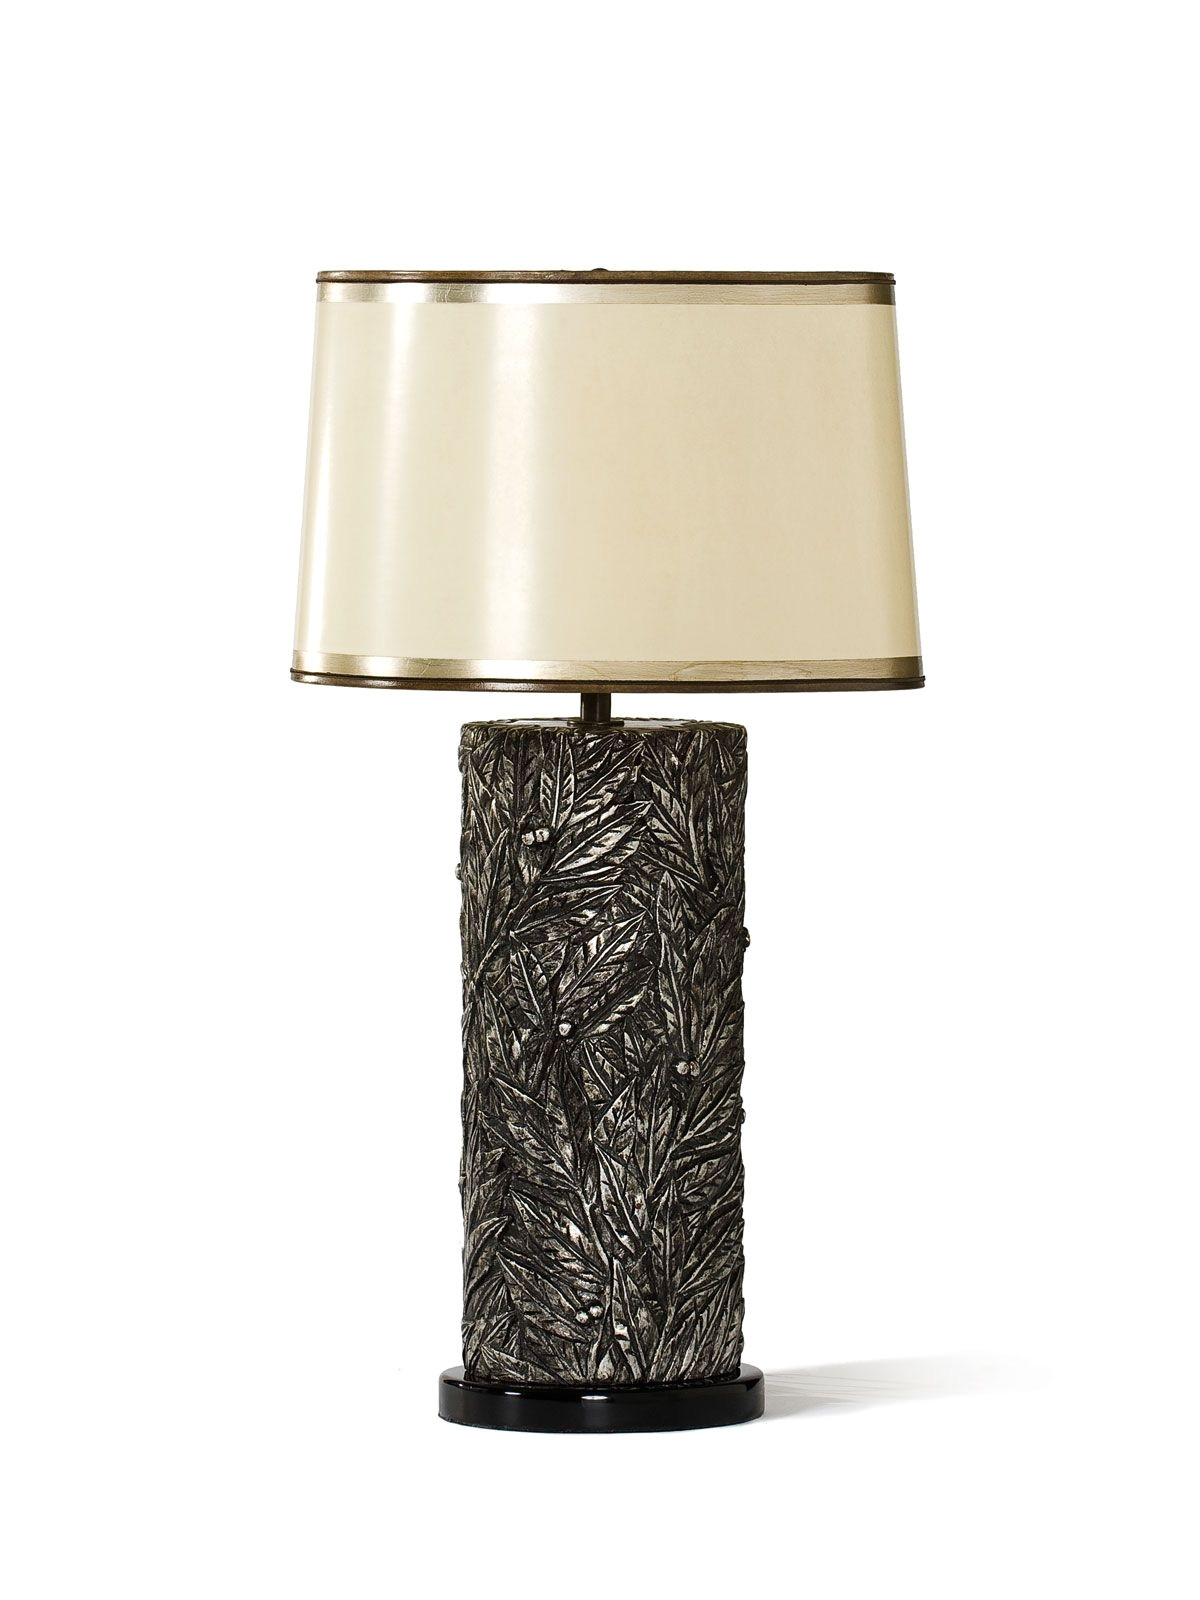 jean de merry buisson table lamp de sousa hughes